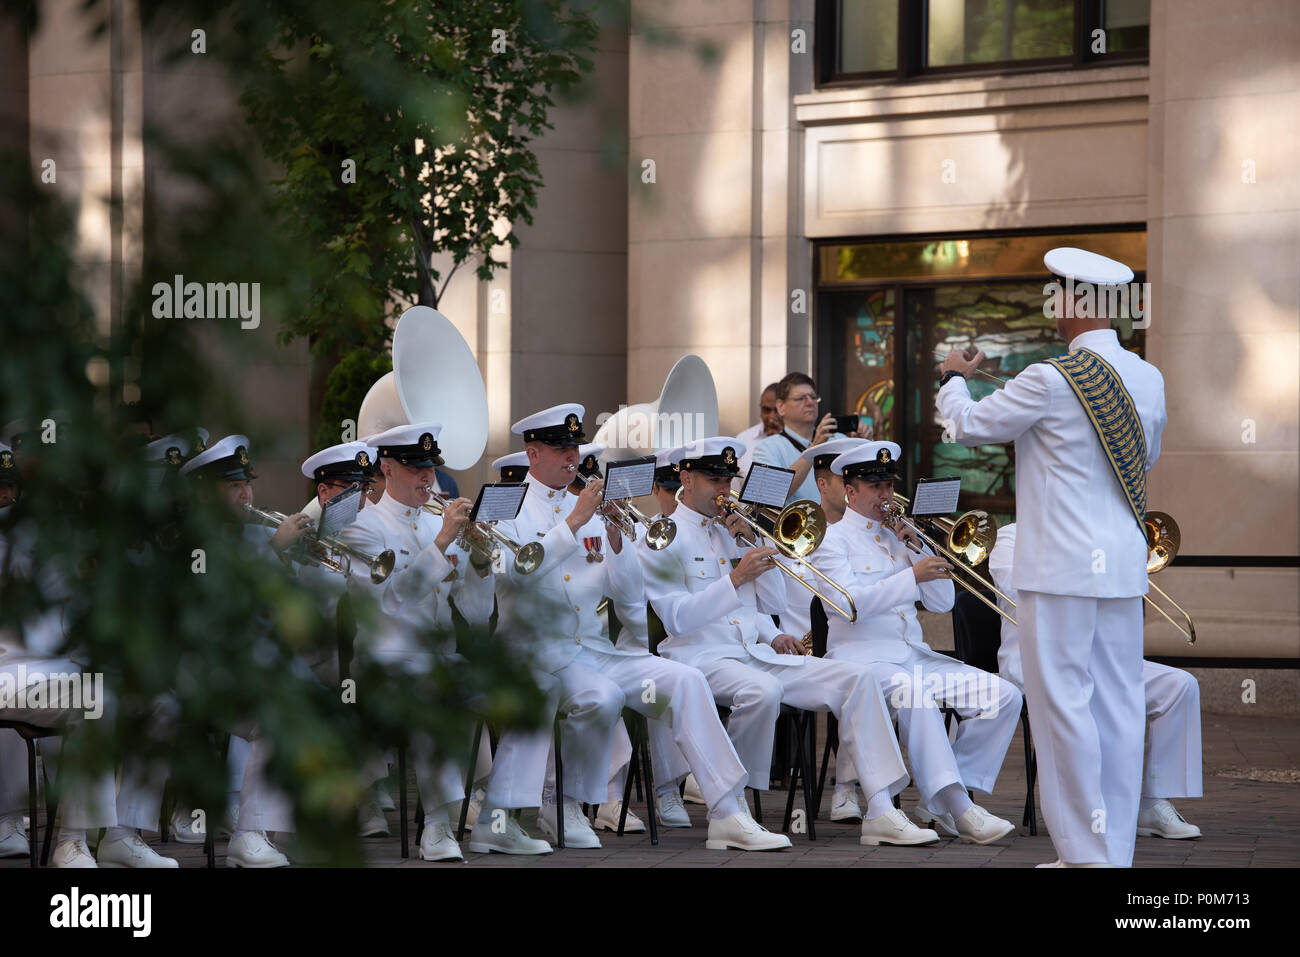 180605-N-HG258-1051 WASHINGTON (June 5, 2018) Members of the U.S. Navy Ceremonial band perform ceremonial music at the U.S. Navy Memorial in Washington, D.C., during the commemoration of the 76th anniversary of the Battle of Midway. The Battle of Midway began on June 4 in 1942 and stands as one of the U.S. Navy's most historically significant naval battles. Fought on the high seas of the Pacific more than half a century ago, this battle altered the course of the war in the Pacific and thereby shaped the outcome of world events. (U.S. Navy photo by Senior Chief Musician Stephen Hassay/Released) - Stock Image